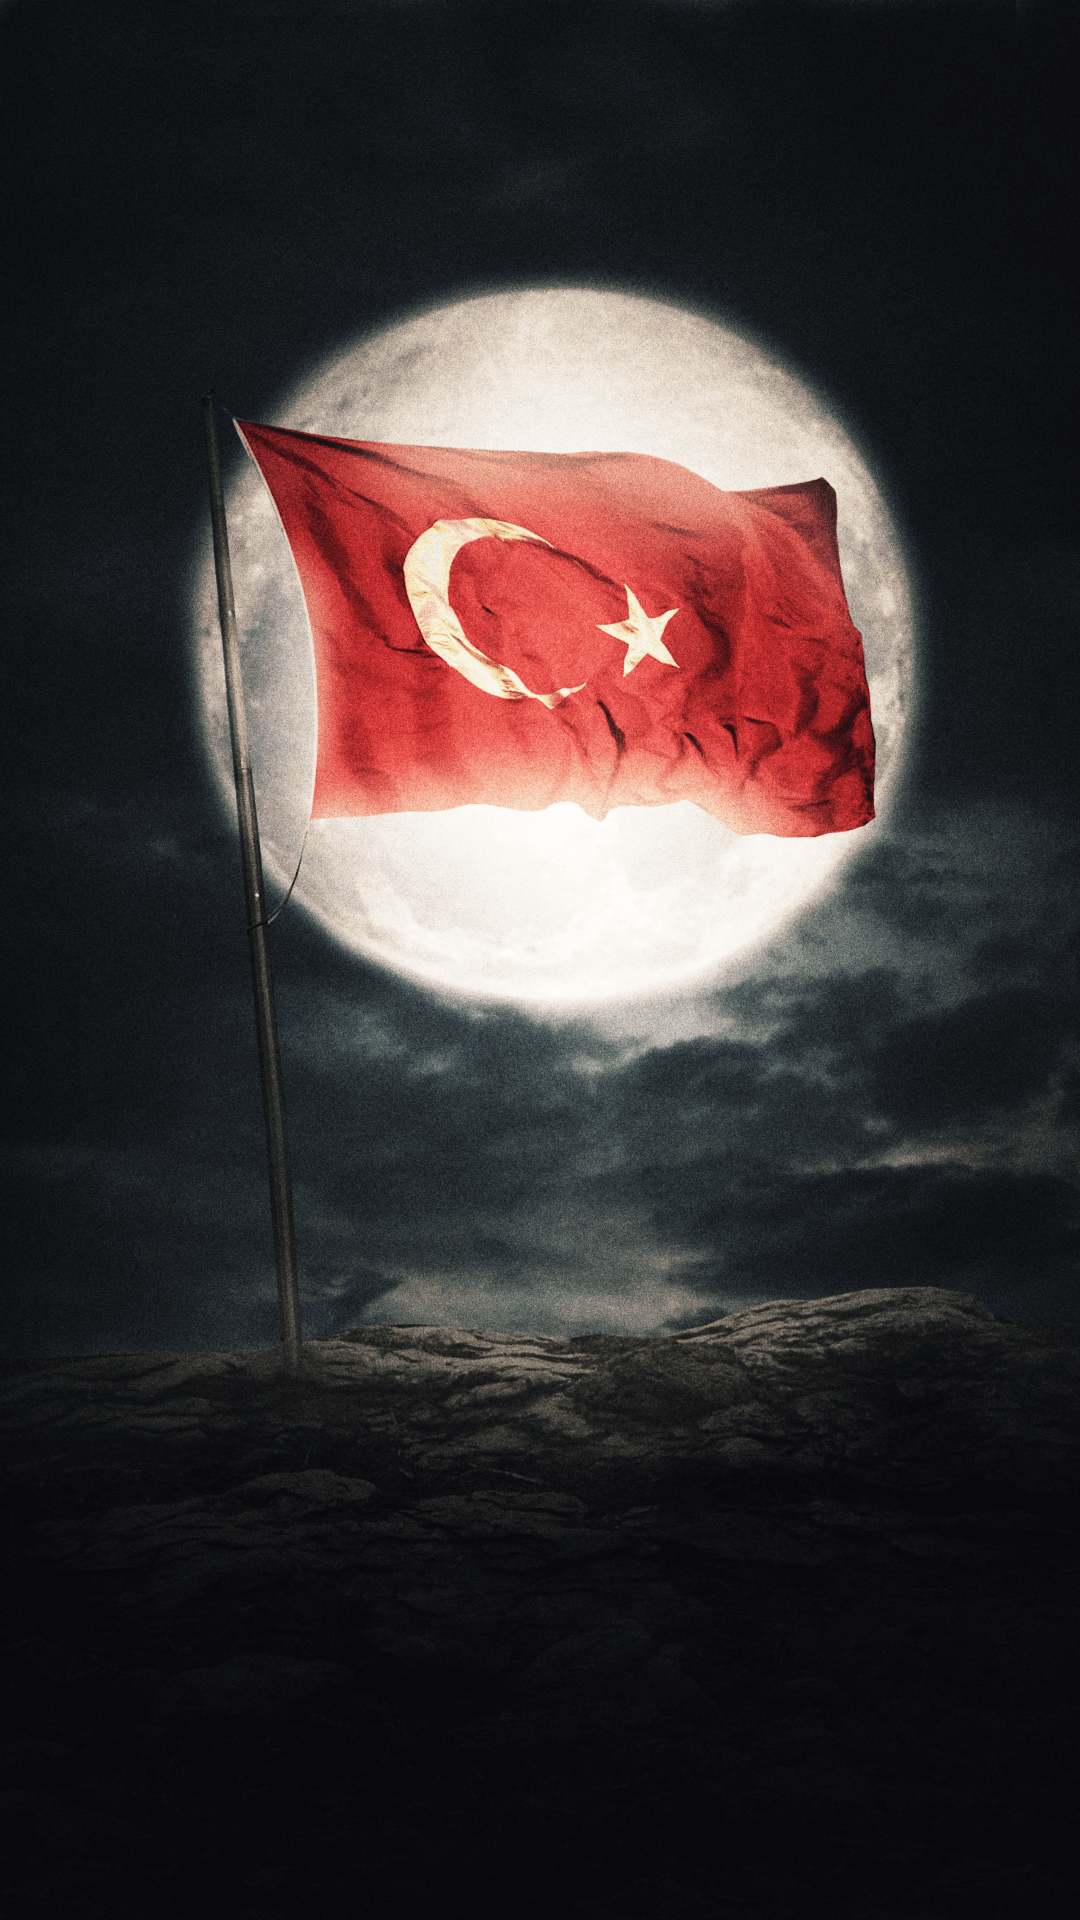 Türk Bayrağı Wallpaper İphone Hd - Duvar Kağıdı Türk Bayrağı , HD Wallpaper & Backgrounds